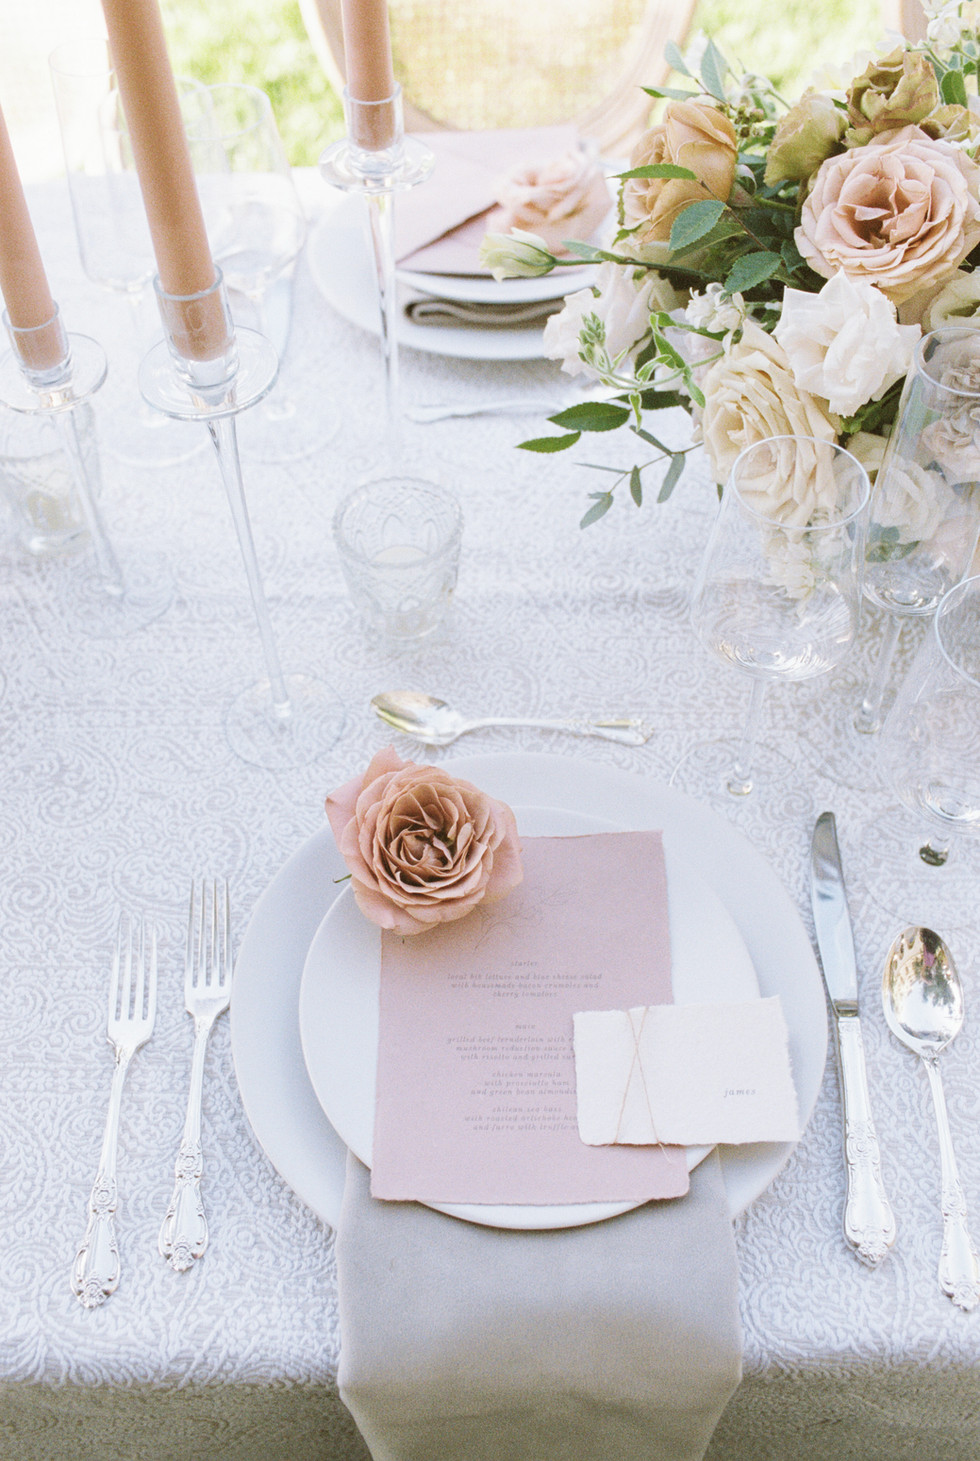 Cappuccino rose placed on dinner plate for wedding reception. Photo: Lianna Marie